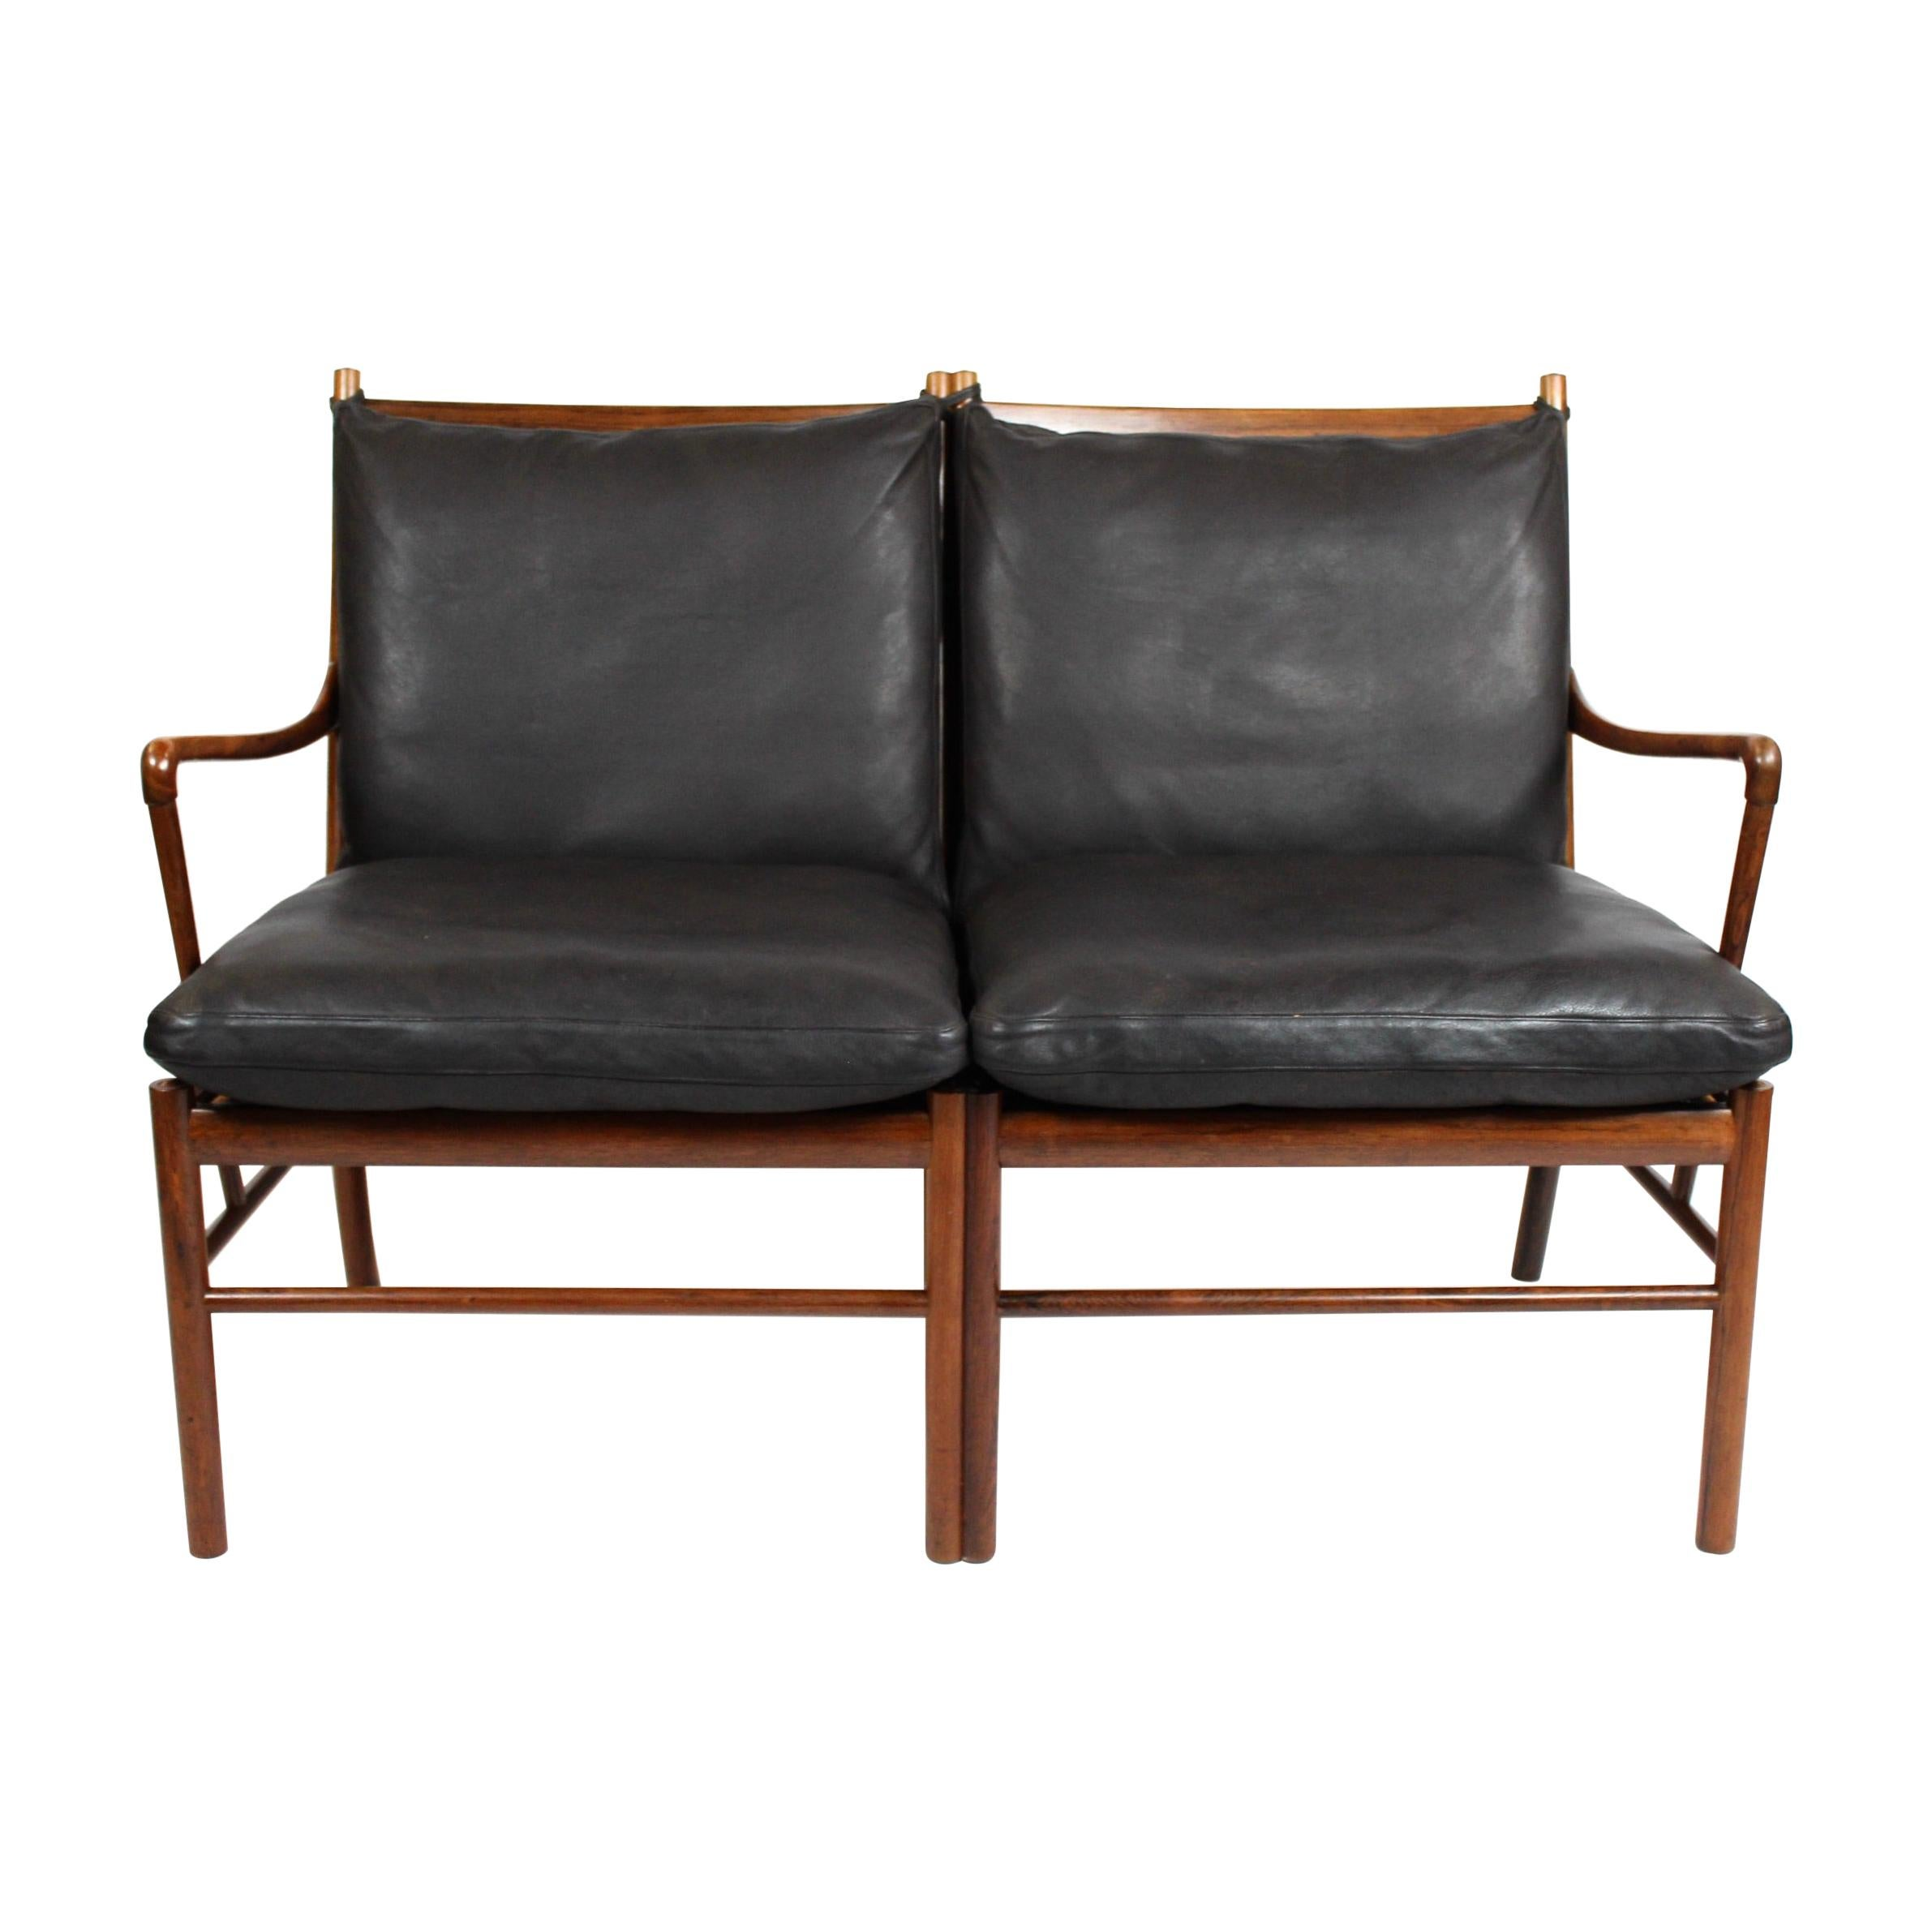 Colonial 2-Seat Sofa, Model OW149-2, by Ole Wanscher, 1960s